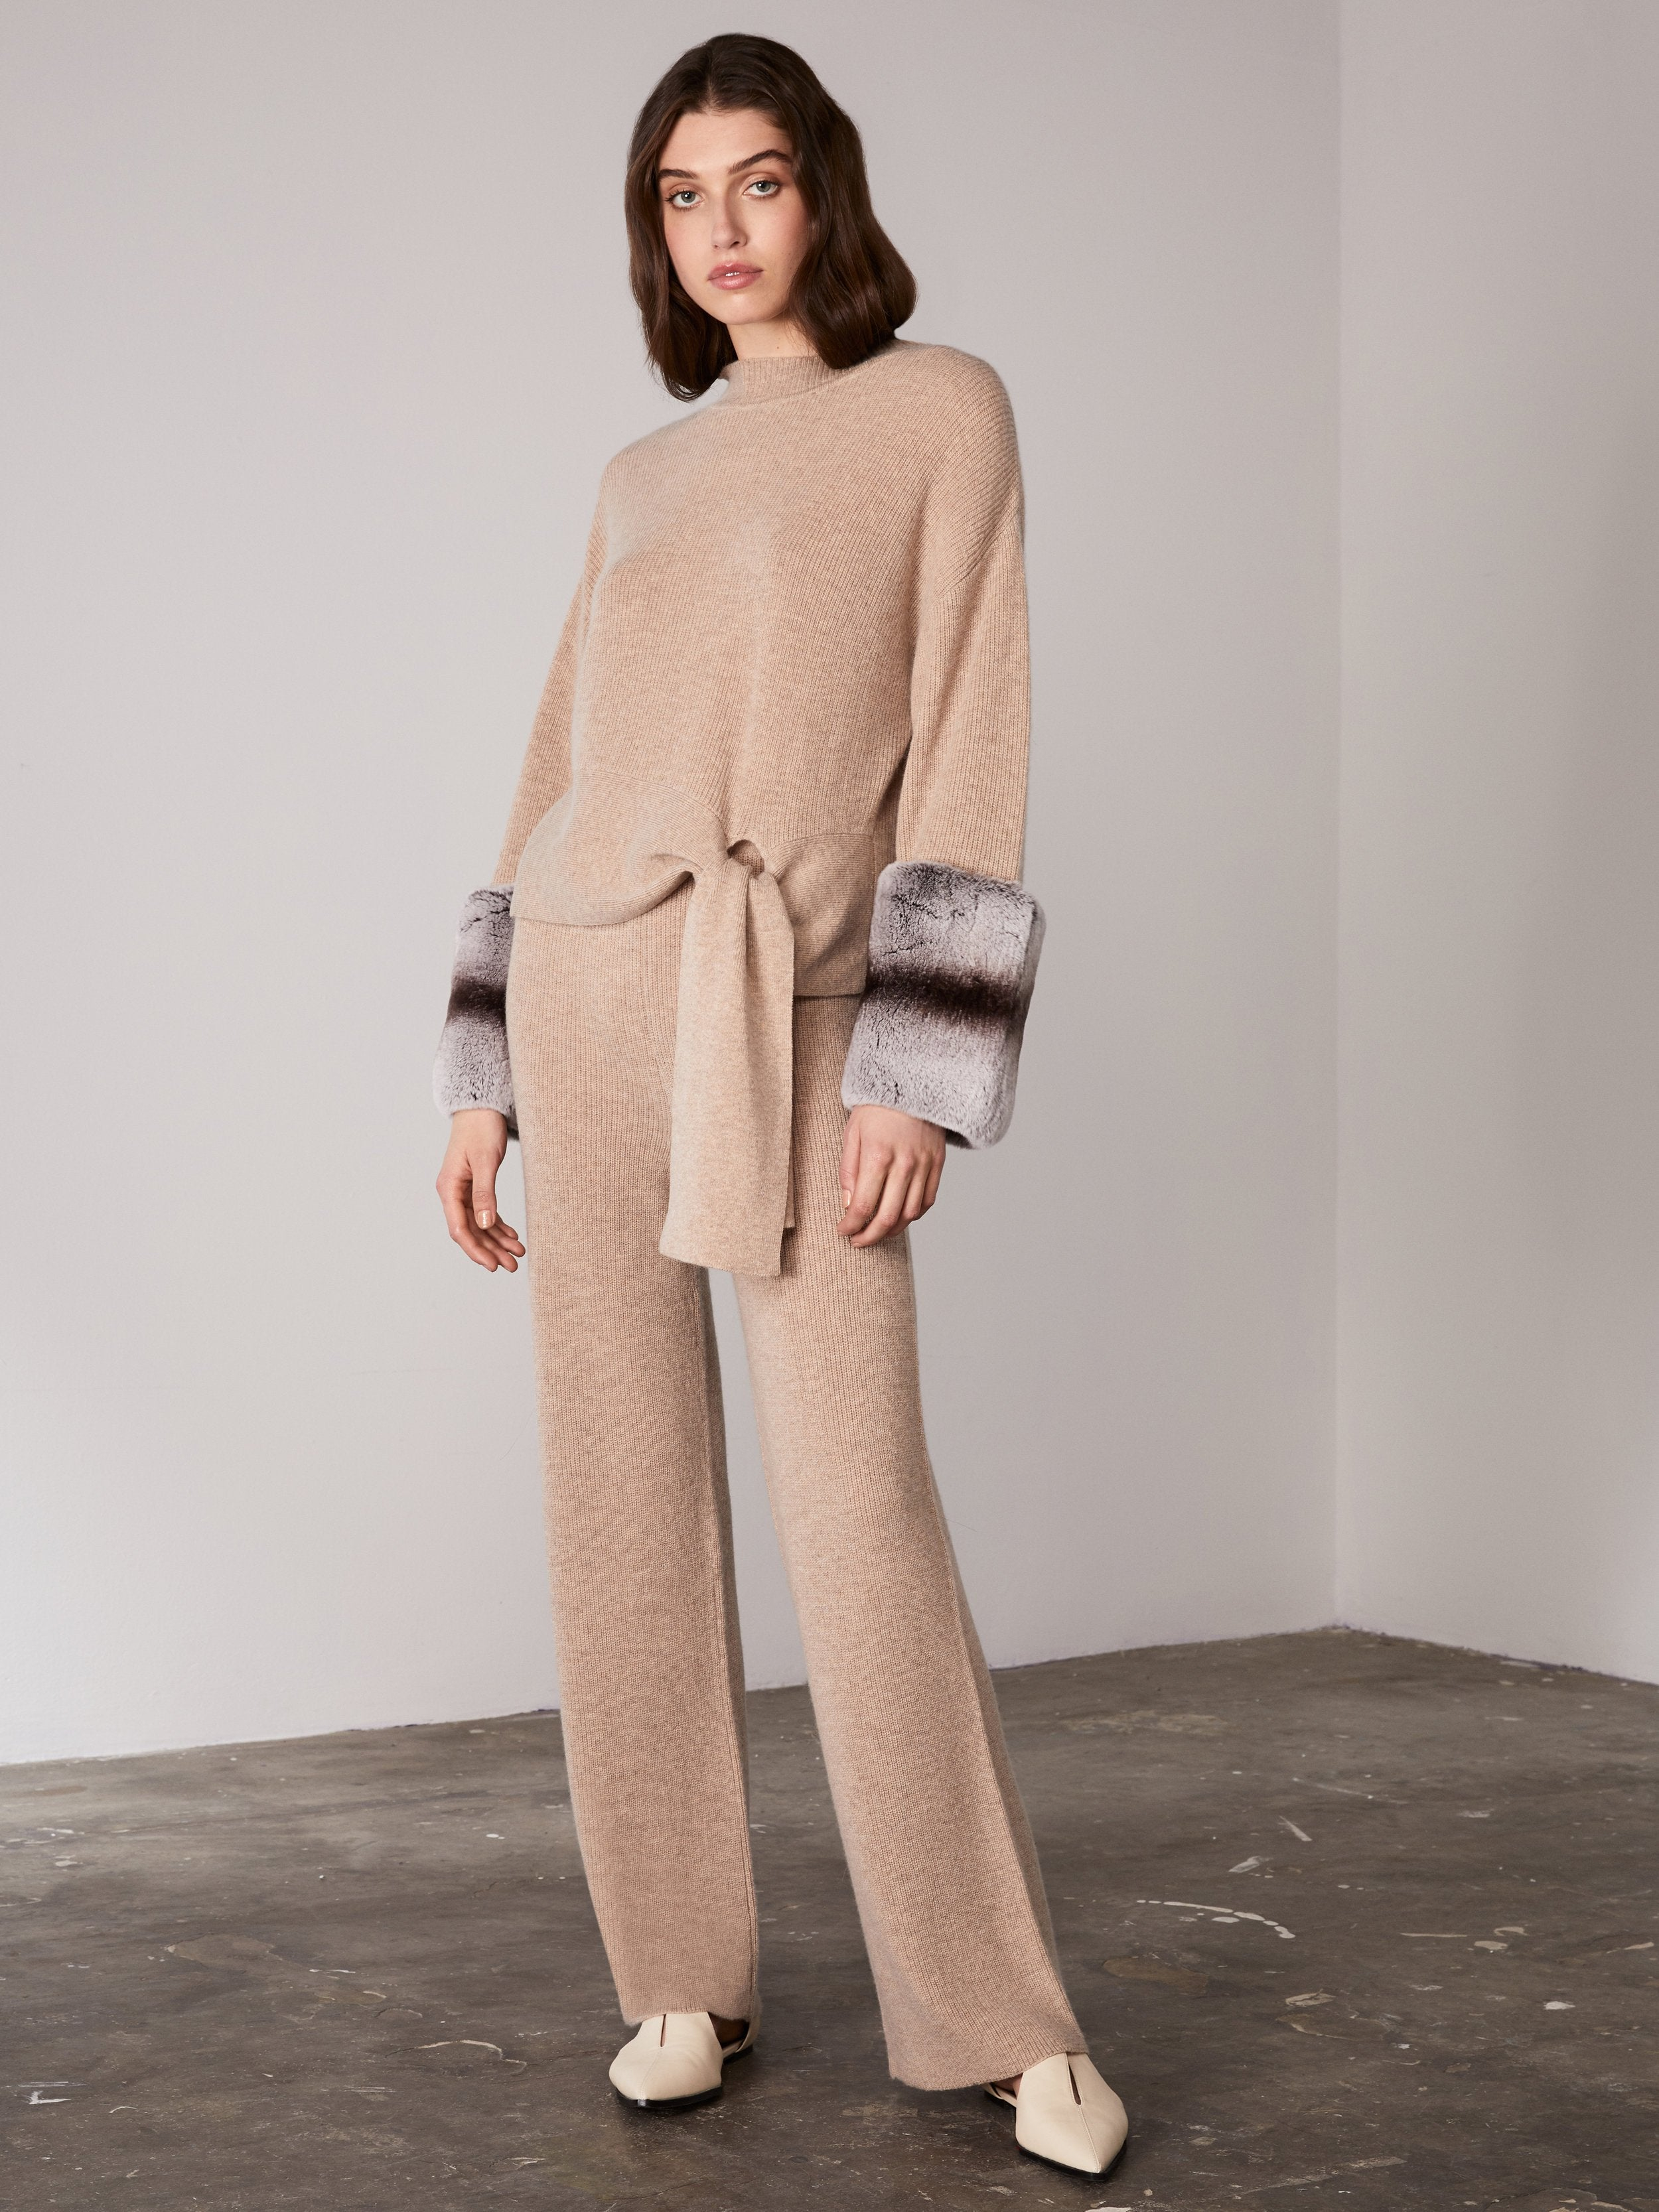 Beige Tie Detail Knit Sweater